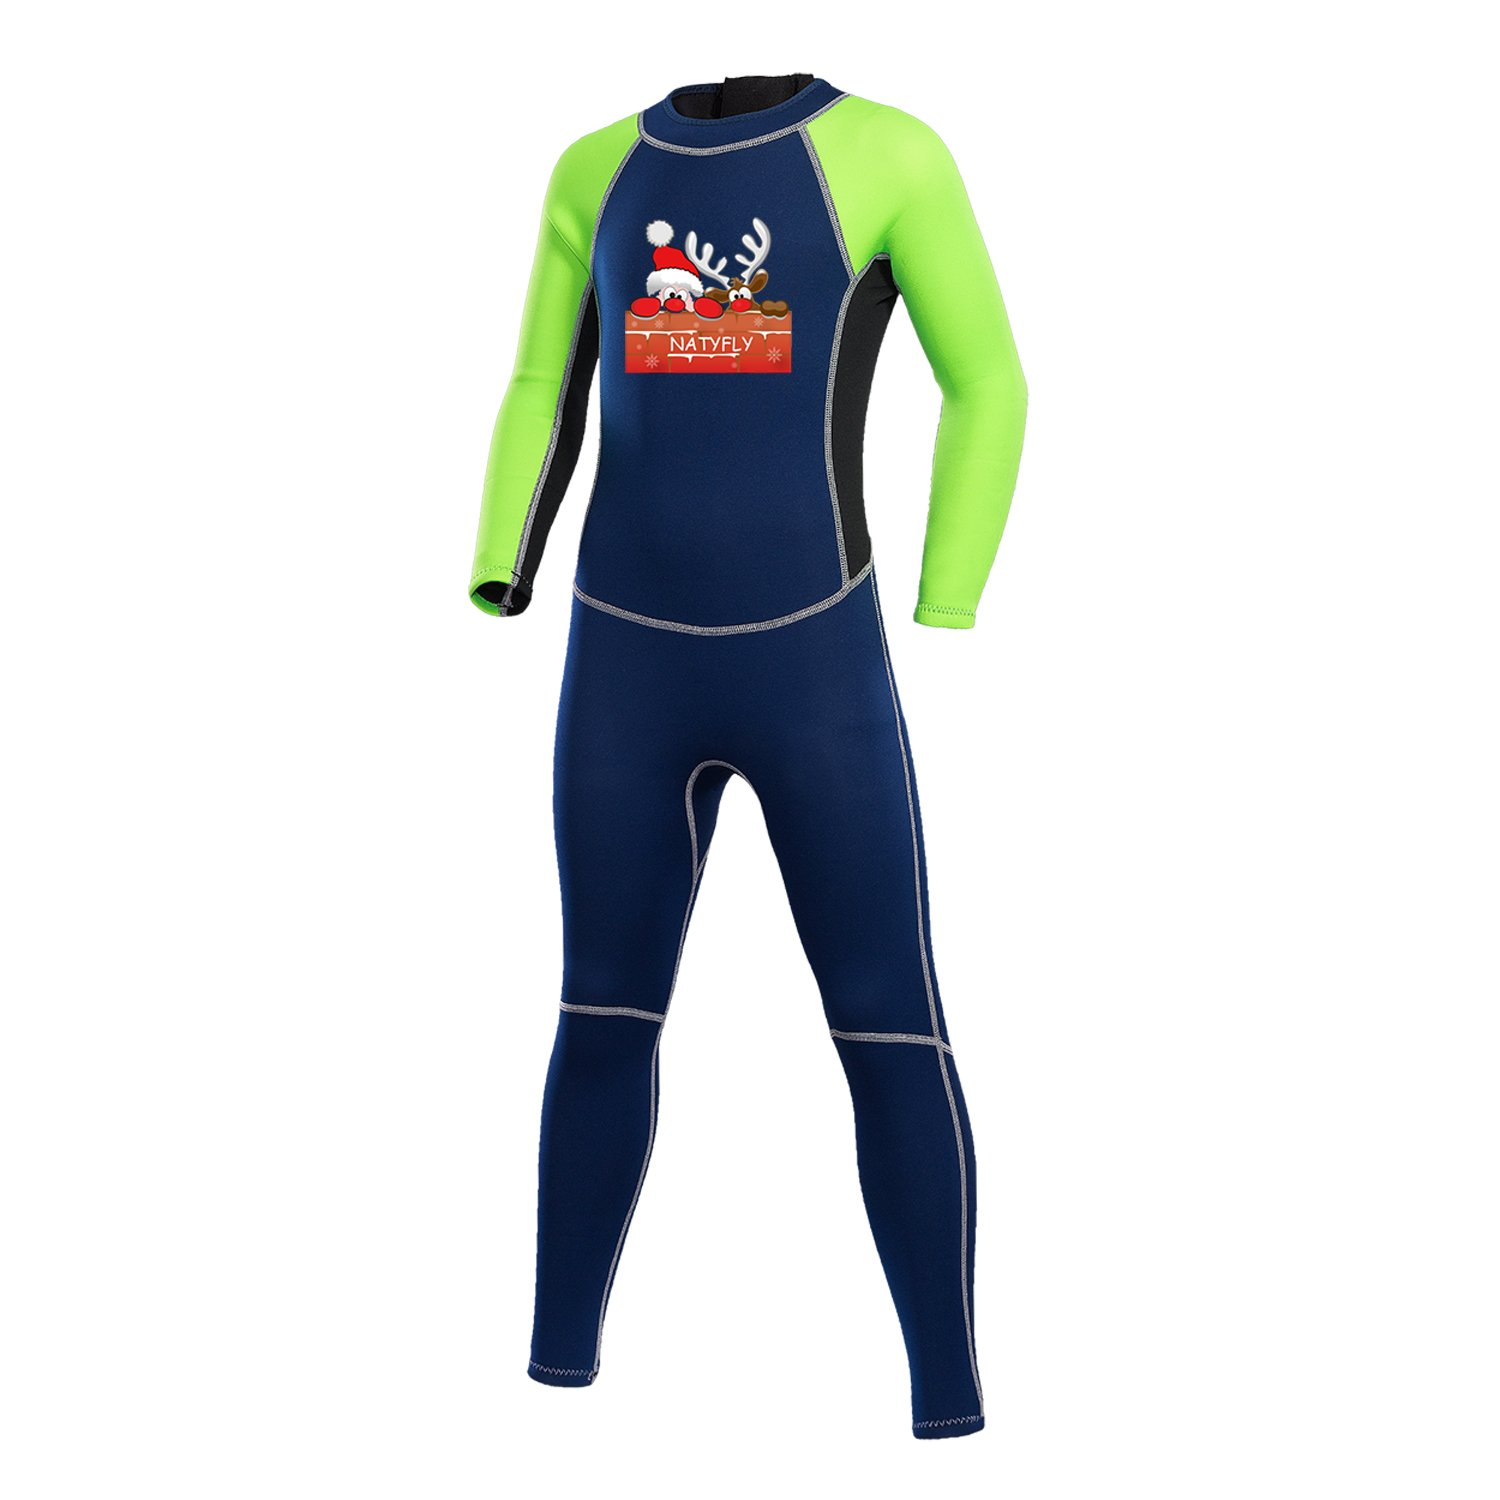 NATYFLY Neoprene Wetsuits for Kids Boys Girls Back Zipper One Piece Swimsuit UV Protection-Brand (Green-2MM, L-for Height 47''-52'')